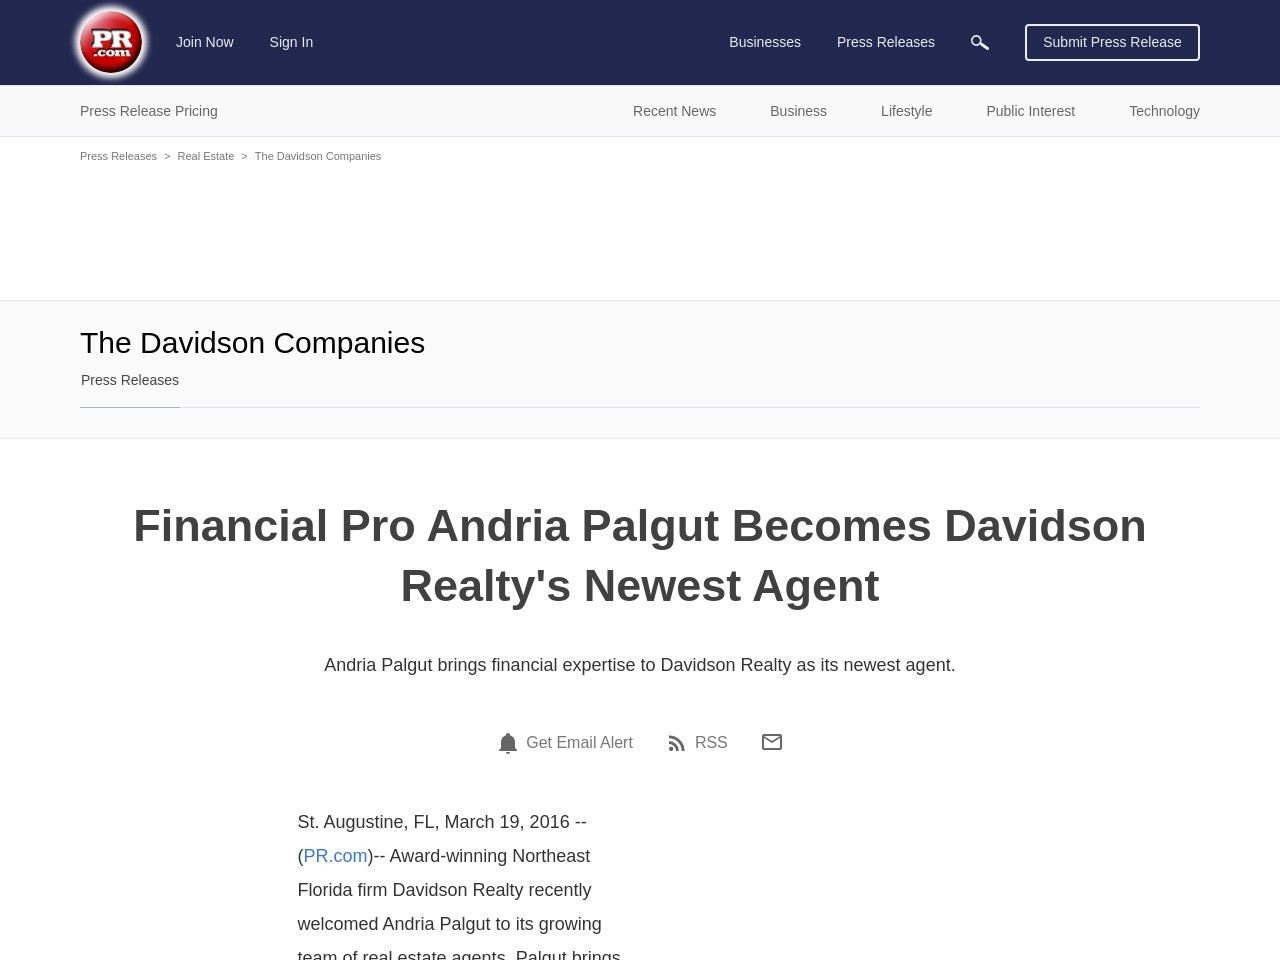 Financial Pro Andria Palgut Becomes Davidson Realty's Newest Agent